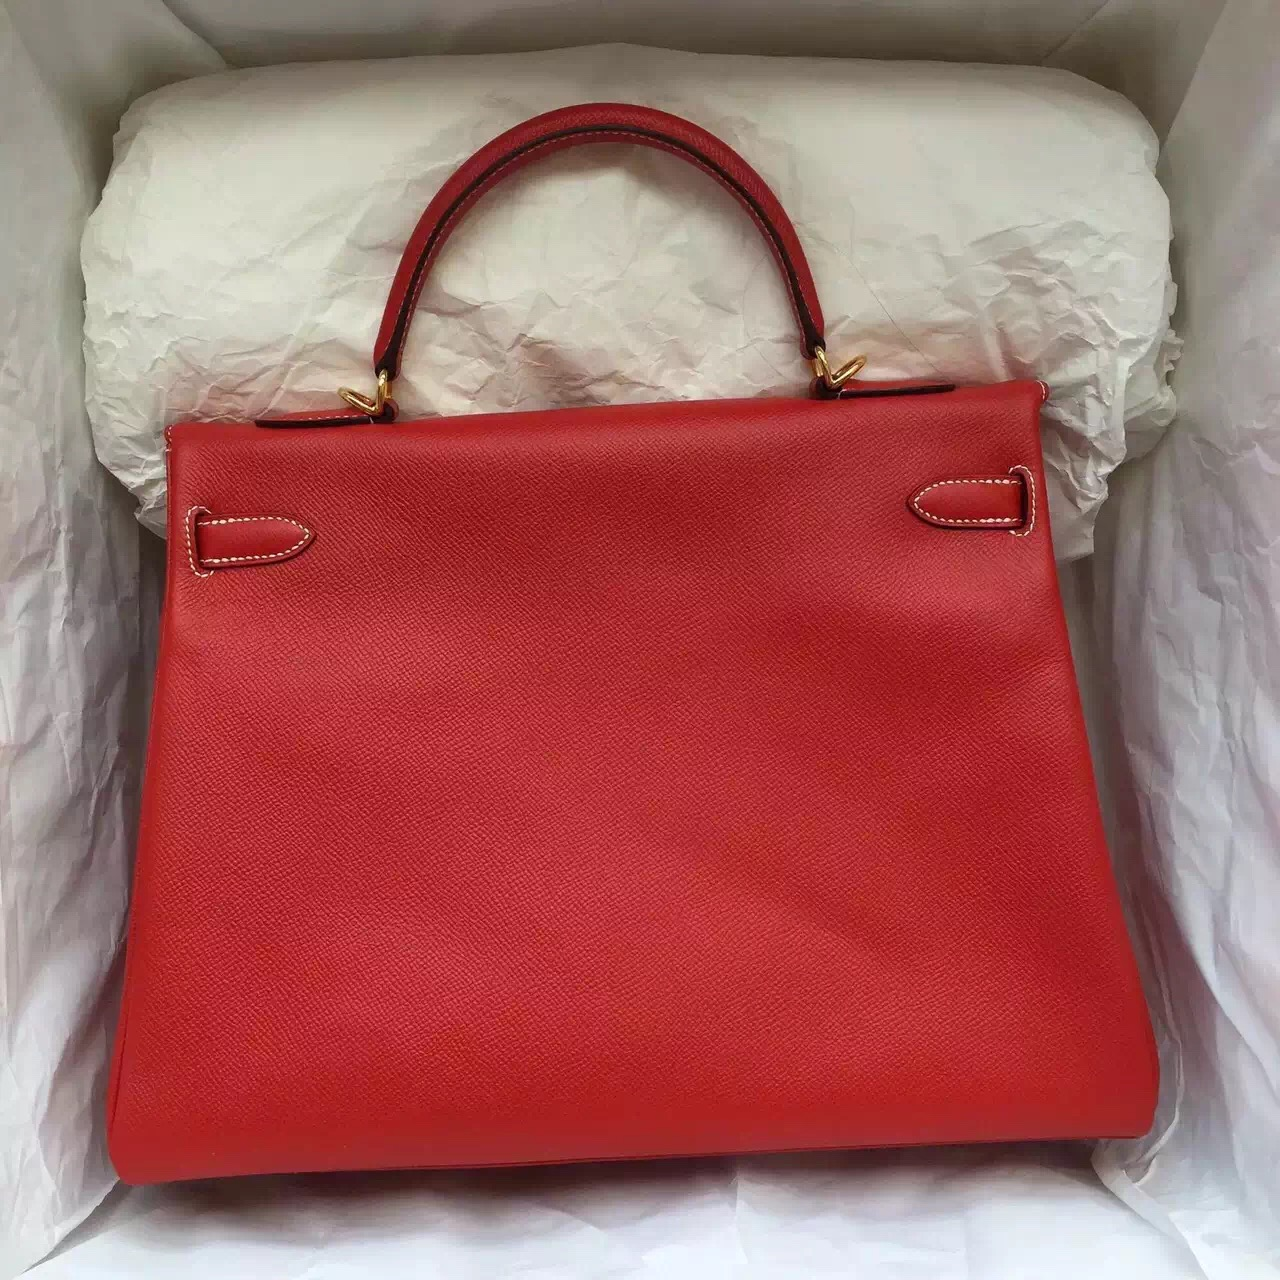 Discount Hermes Kelly Bag 35CM Chinese Red Epsom Leather with White Stitching Line